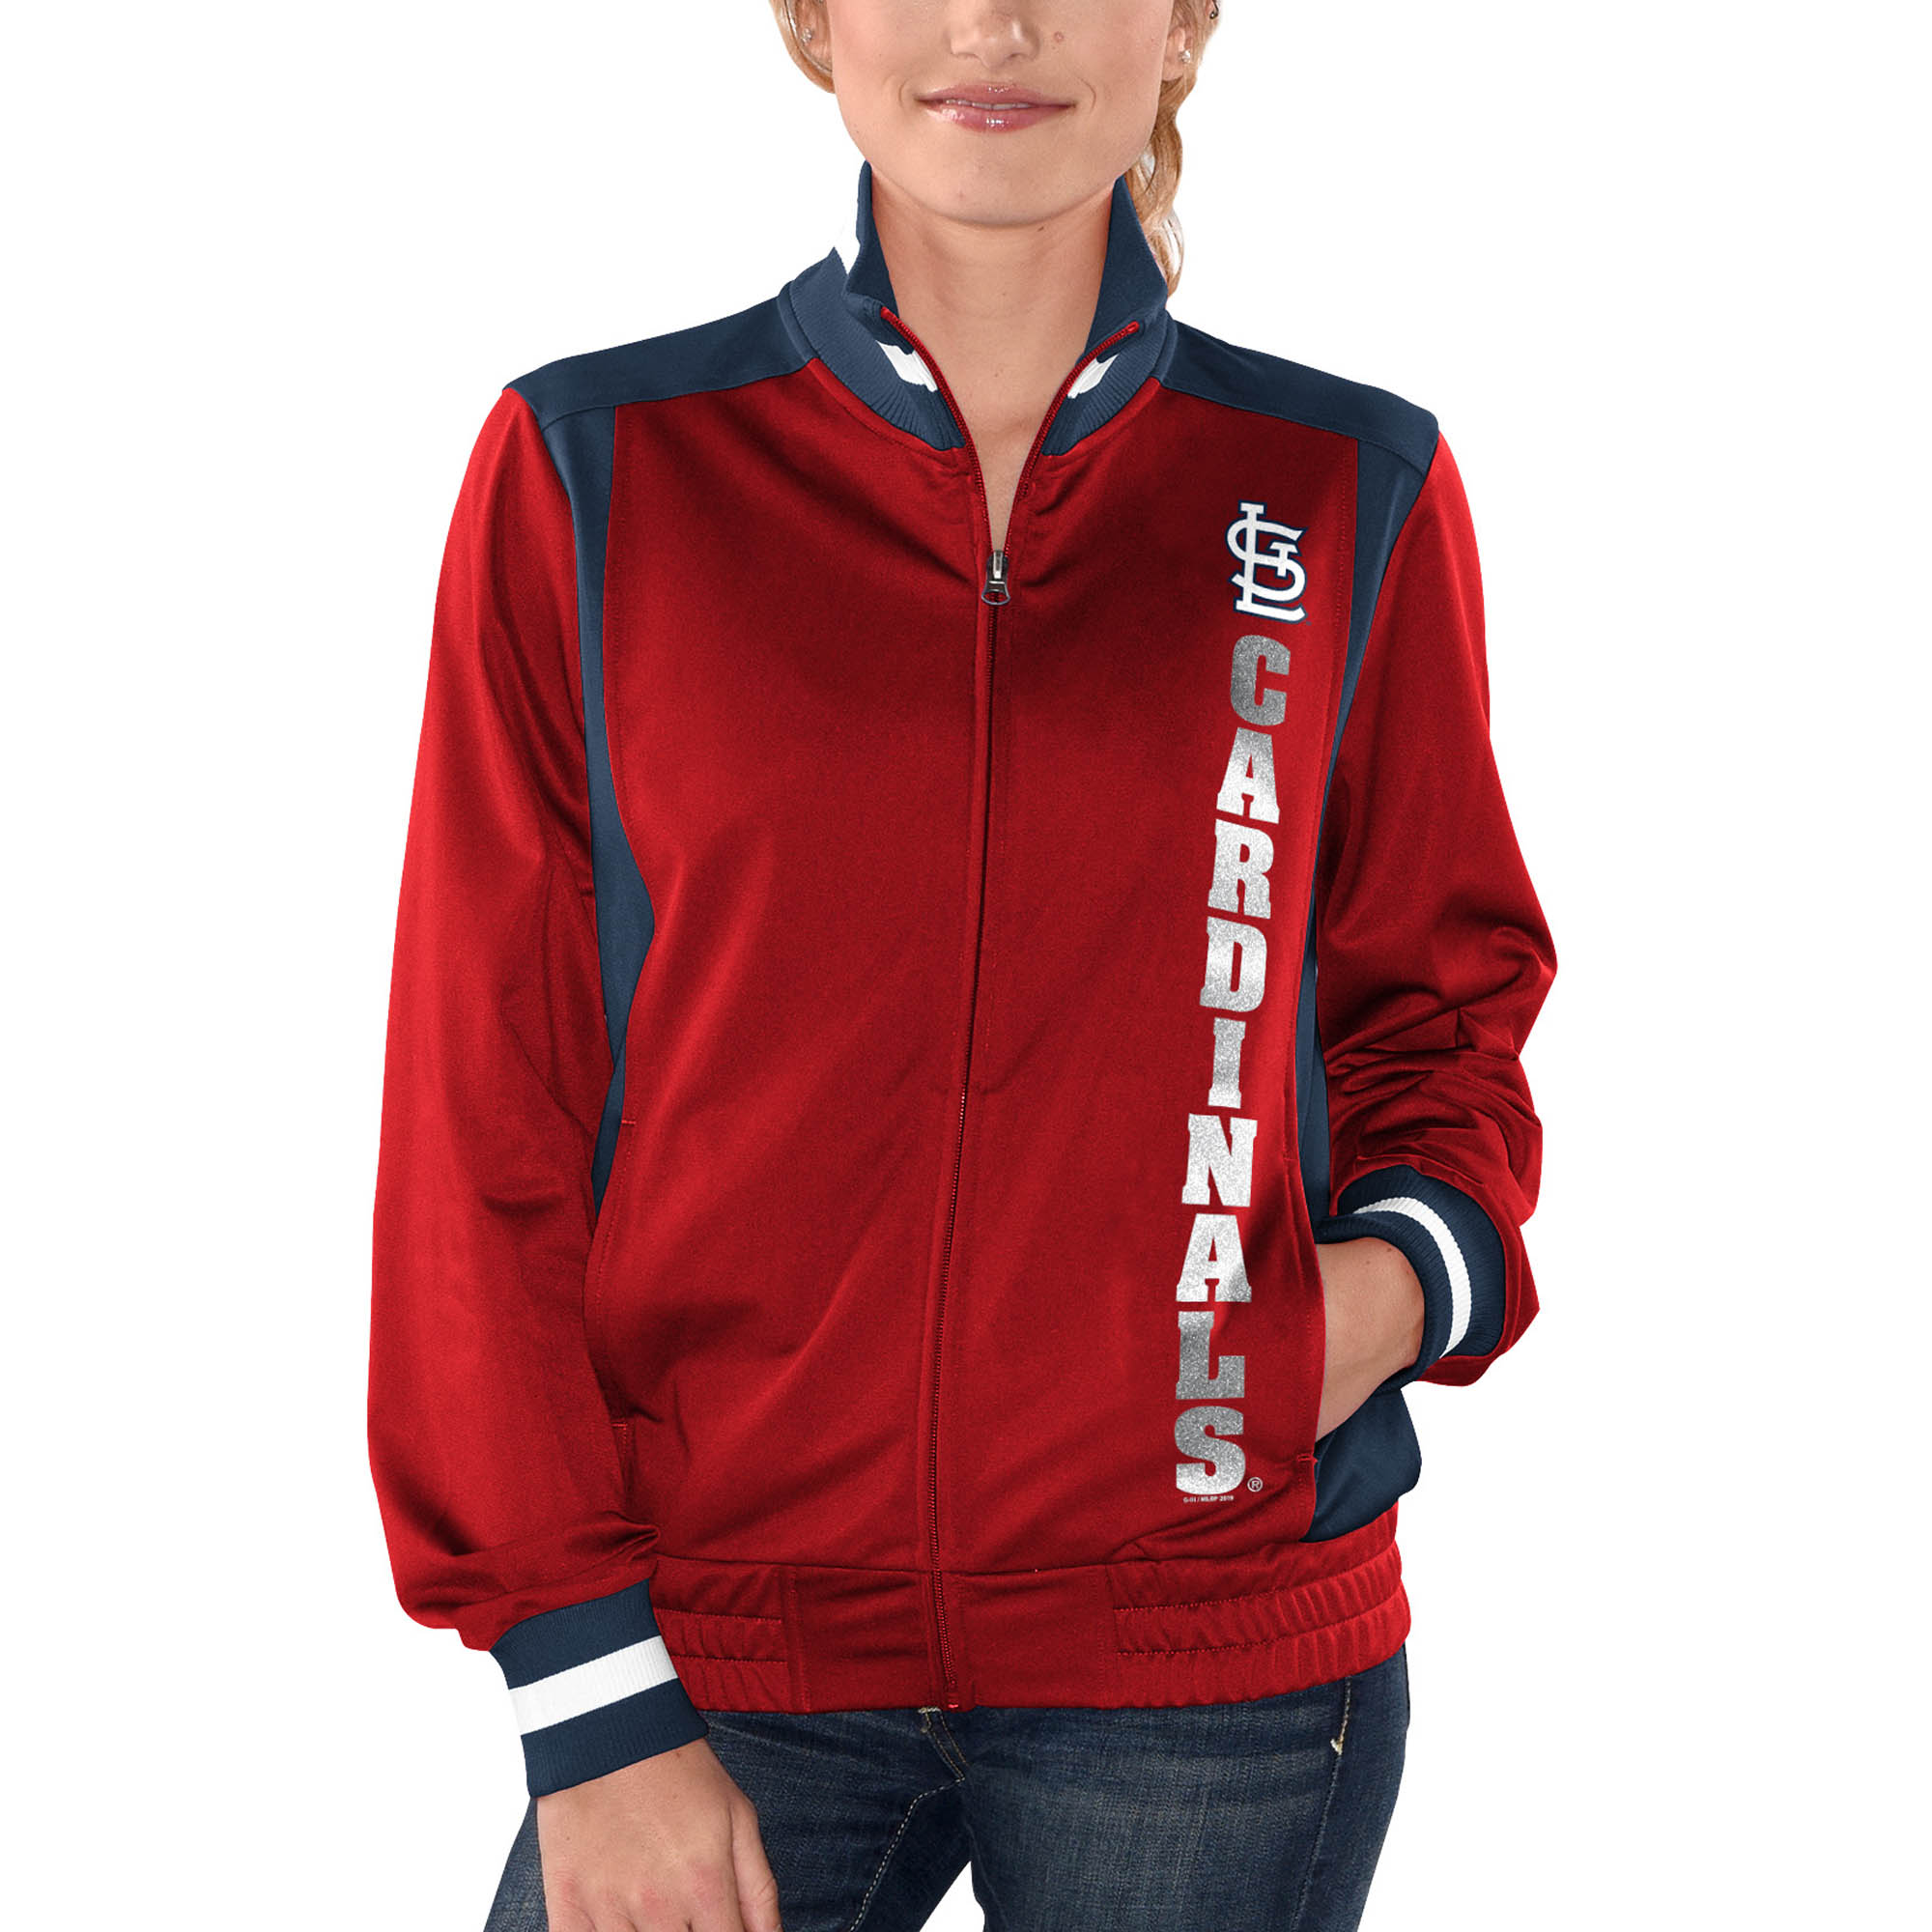 St. Louis Cardinals G-III 4Her by Carl Banks Women's On Deck Full-Zip Track Jacket - Red